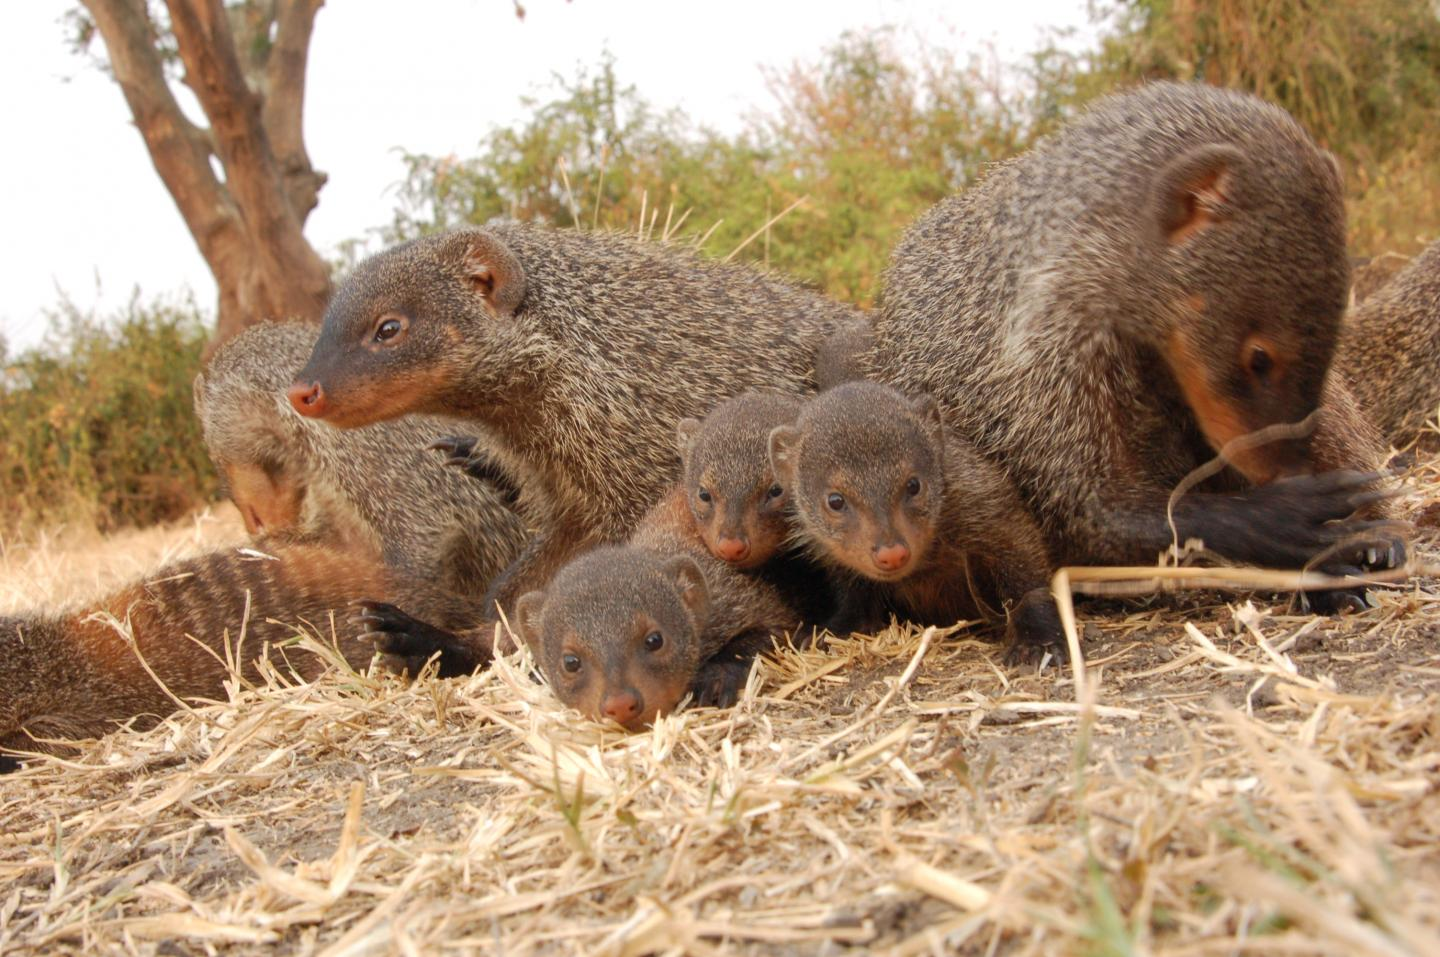 Mongoose pups are raised communally. Credit: Harry Marshall